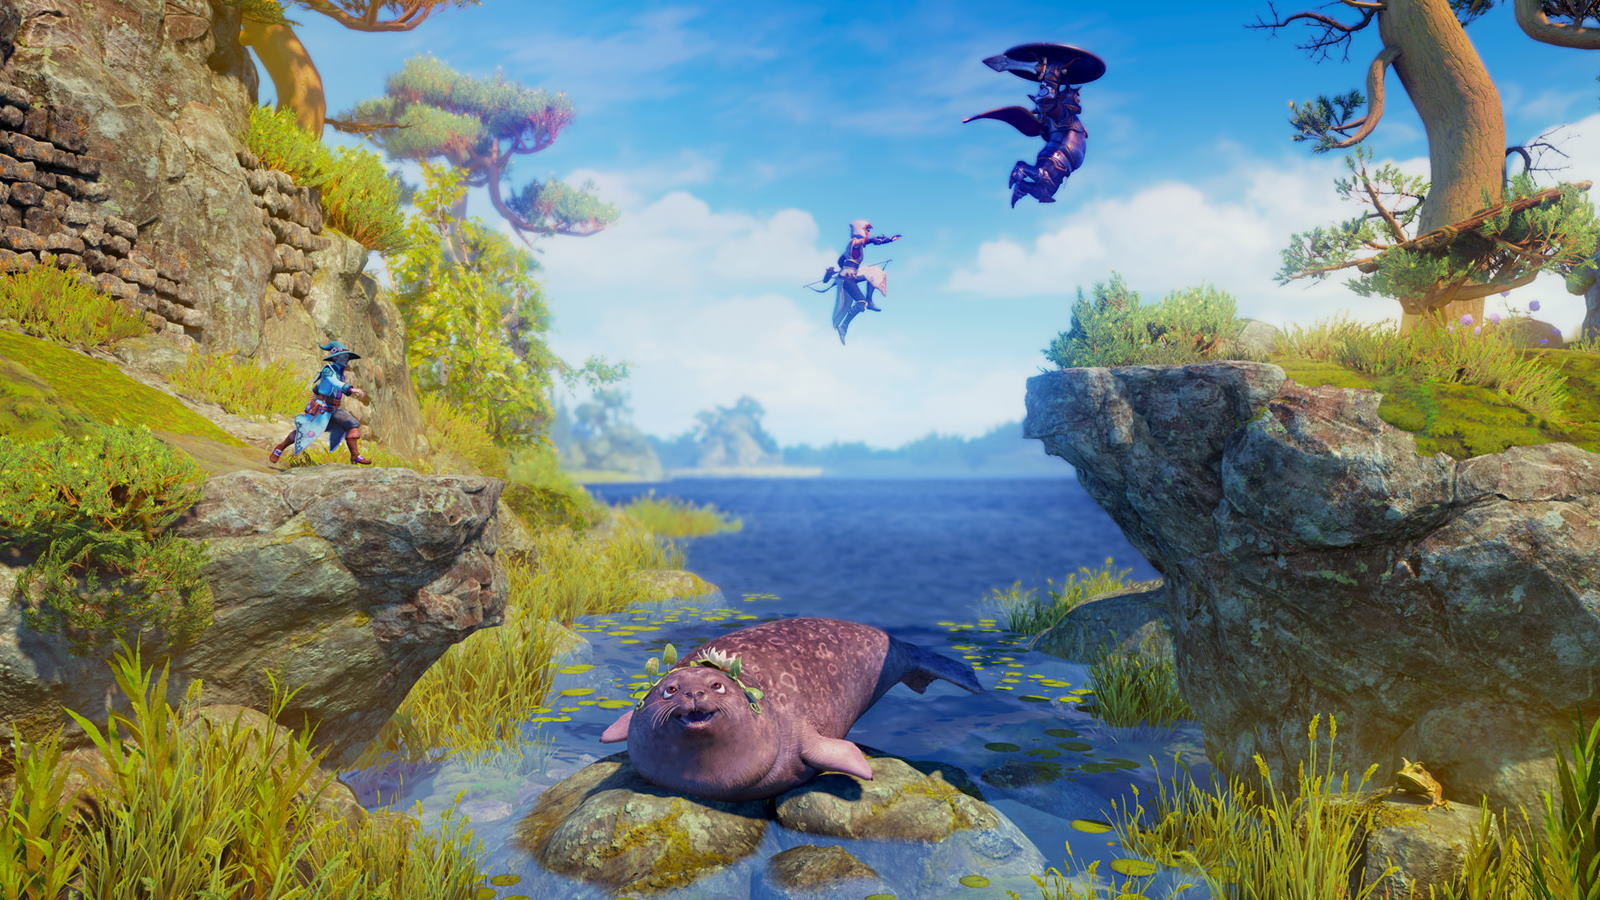 Trine 4 shows off 7 minutes of watery puzzles and mammals | PC Gamer